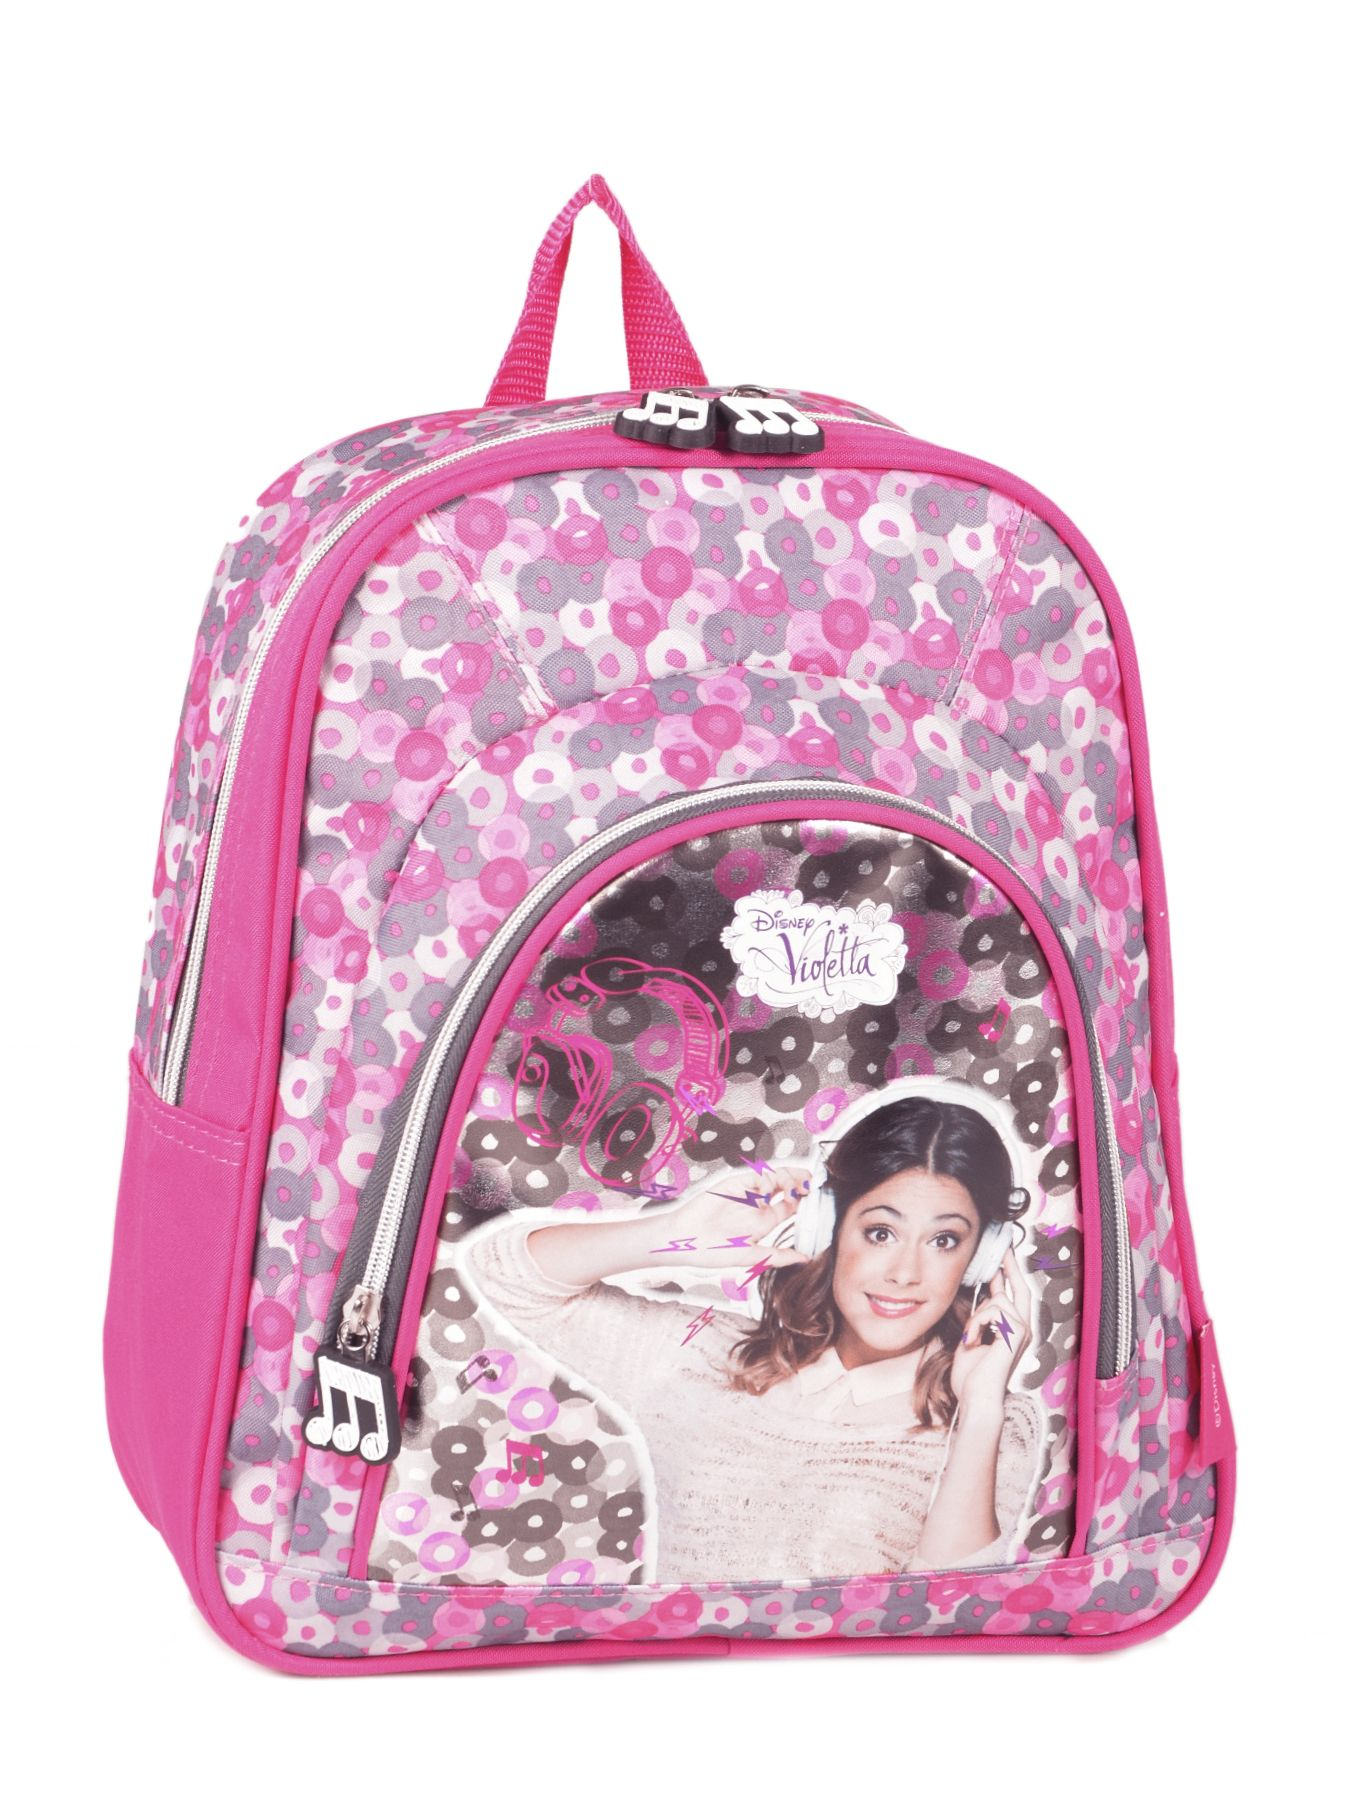 Violetta Backpack Pl12vi14 Free Shipping Available